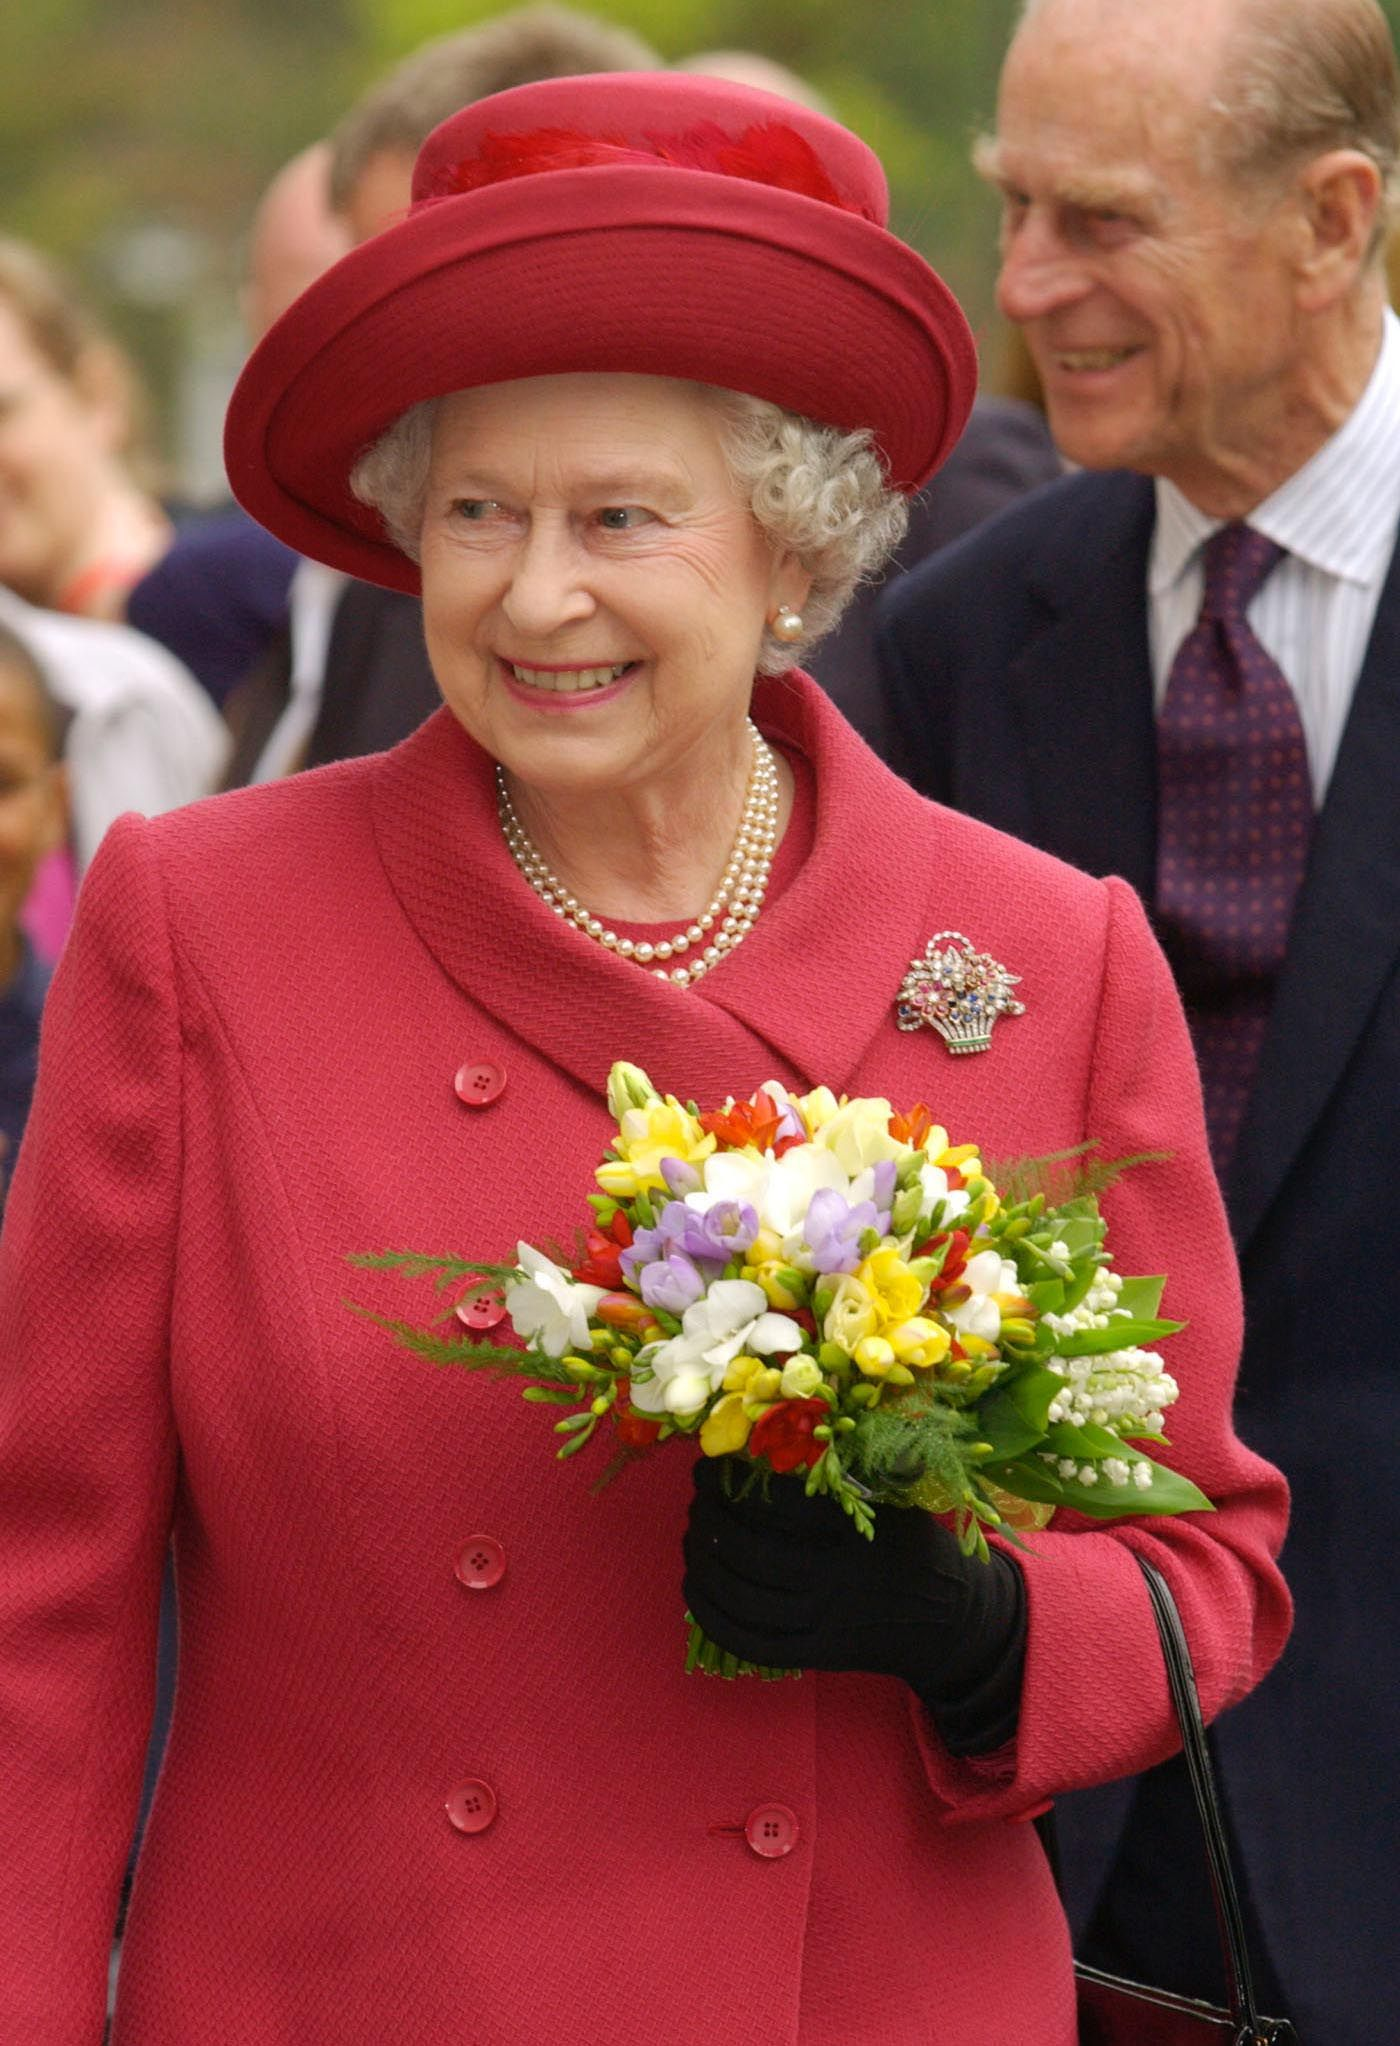 The Queen Mother (then the Duchess of York) with her